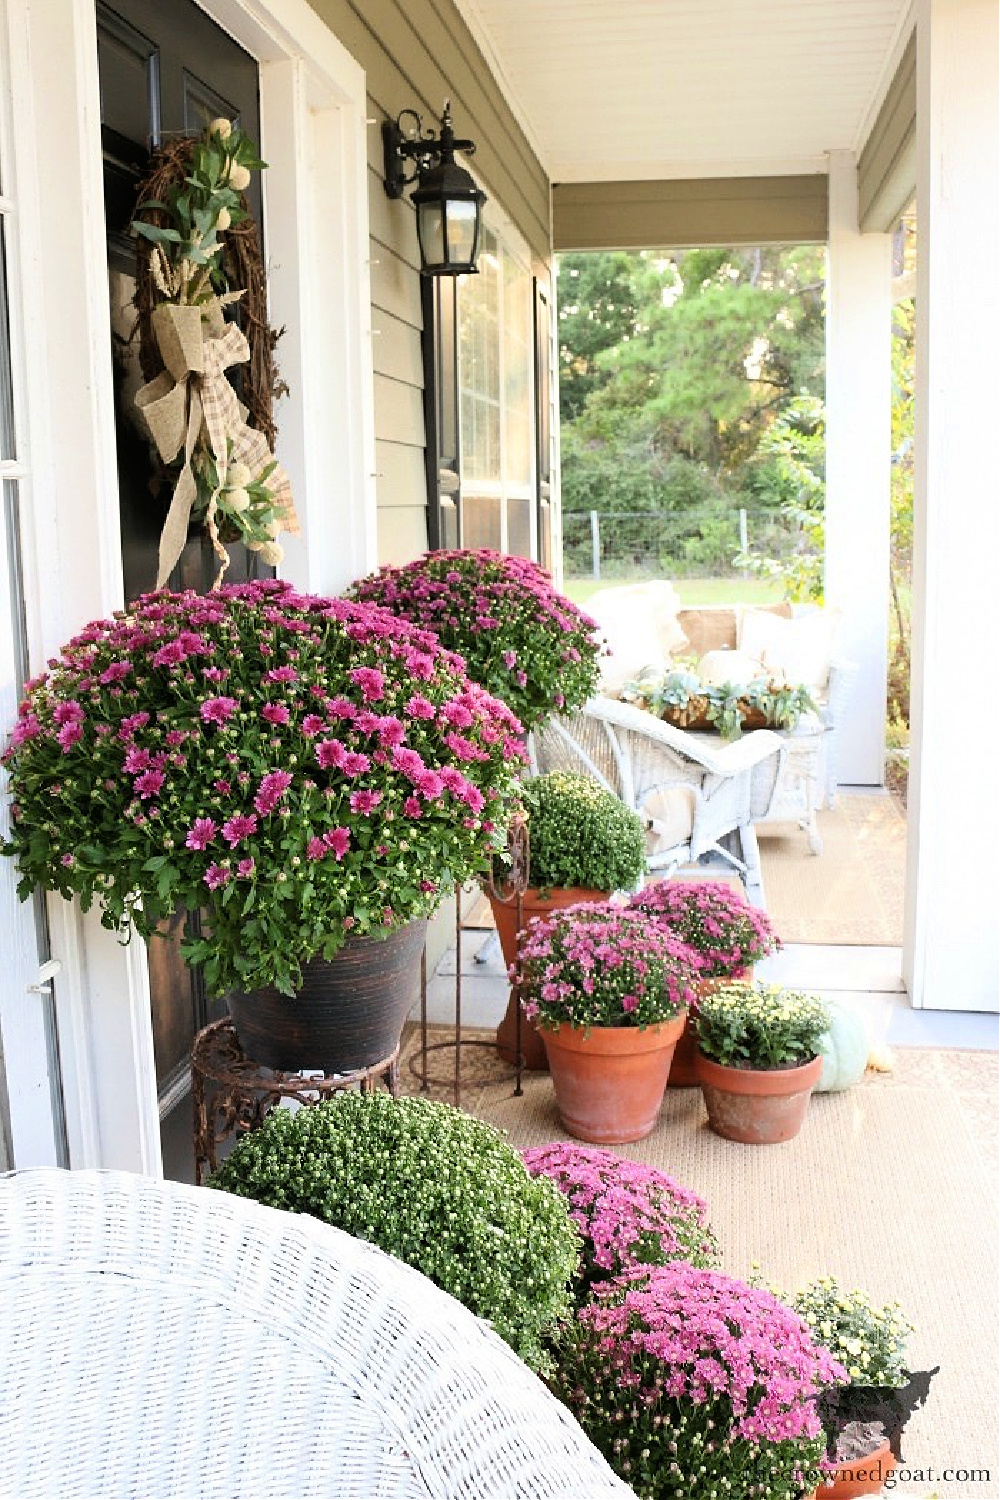 Finding Fall Inspiration: Decorating the Front Porch with Mums-The Crowned Goat